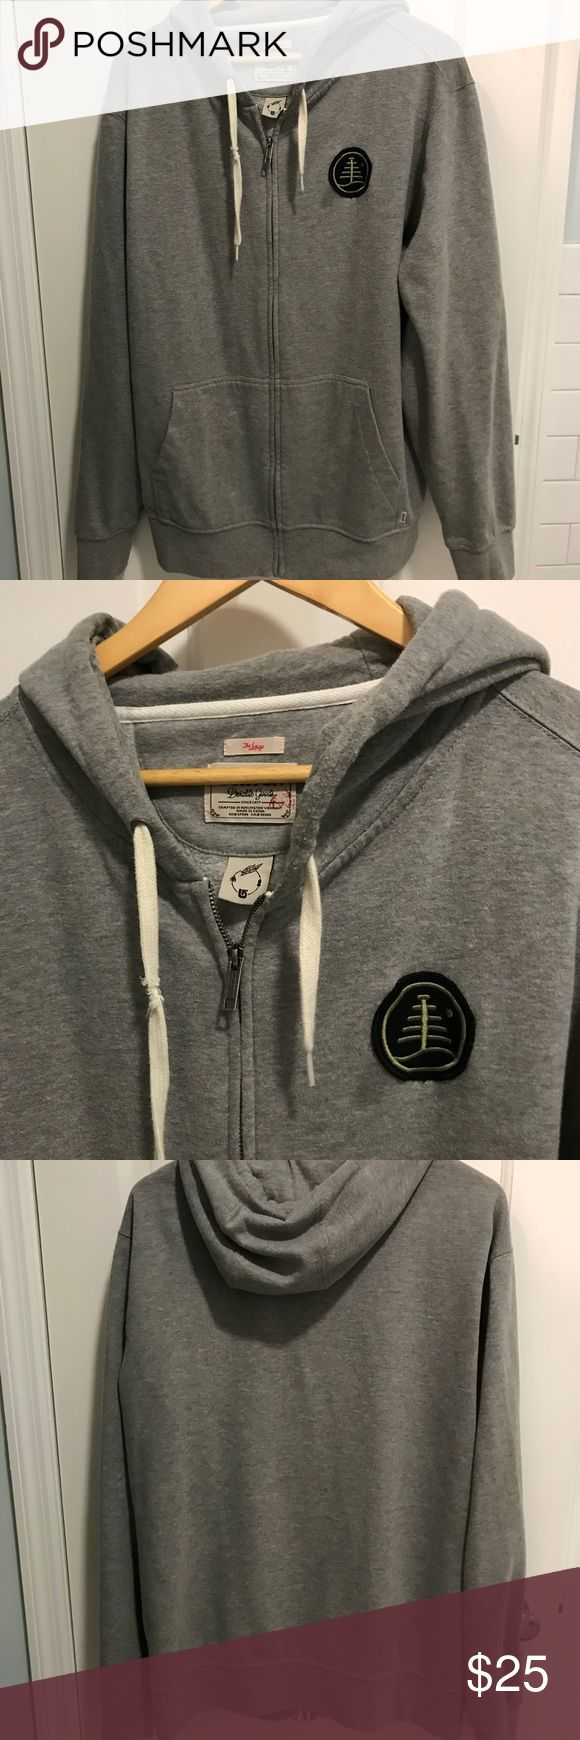 Burton men's hoodie Gray men's Burton hoodie with logo patch Burton Shirts Sweatshirts & Hoodies